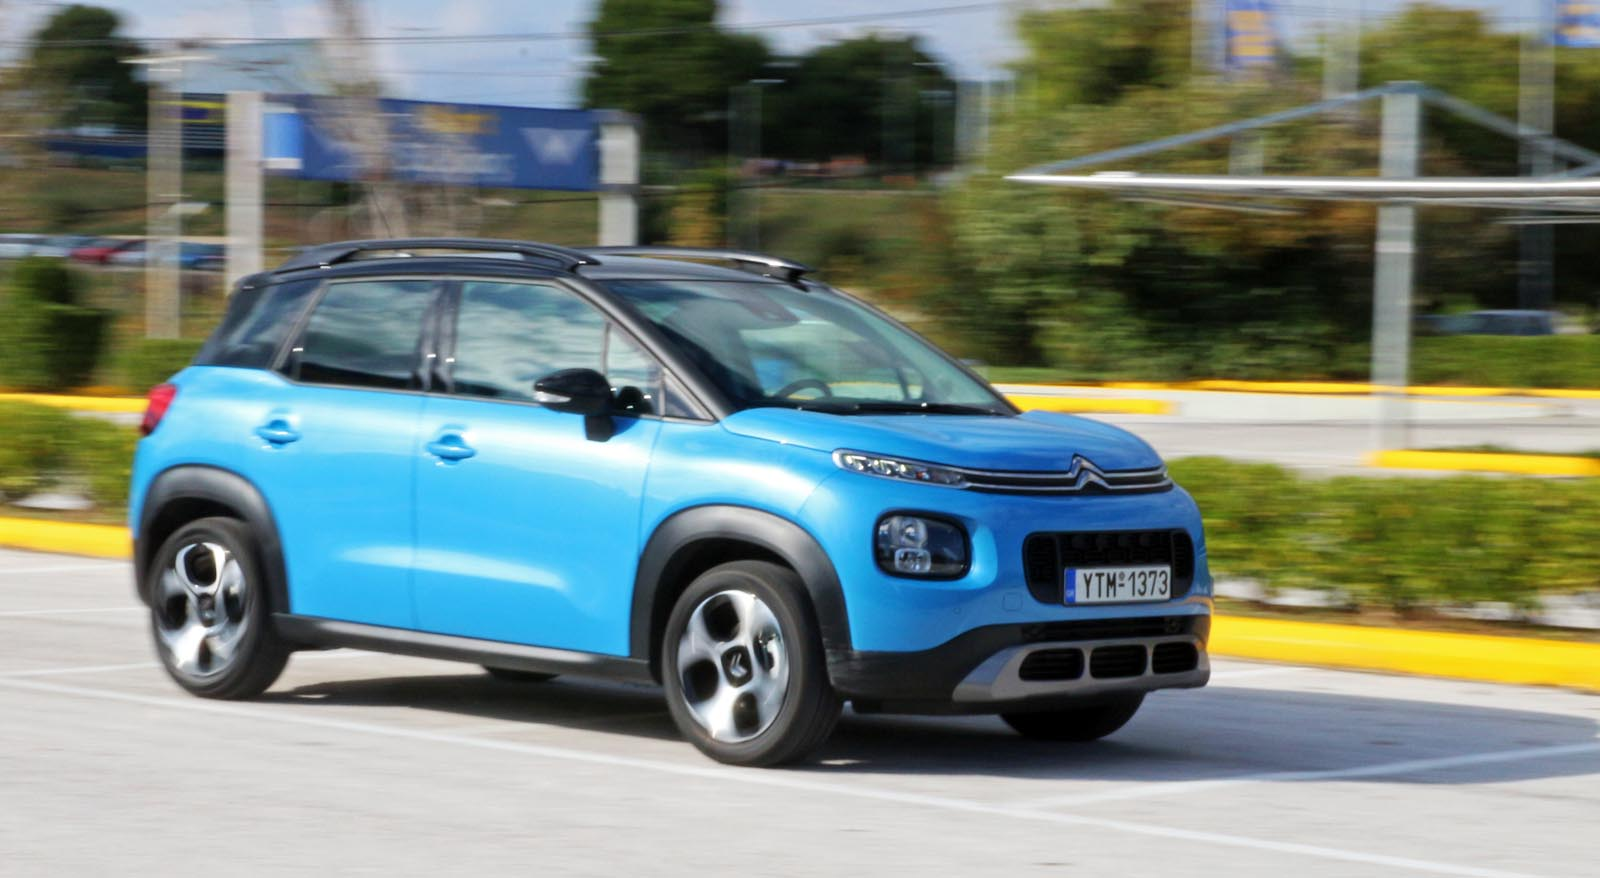 Photo of Citroën C3 Aircross 1.2 PureTech [test drive]